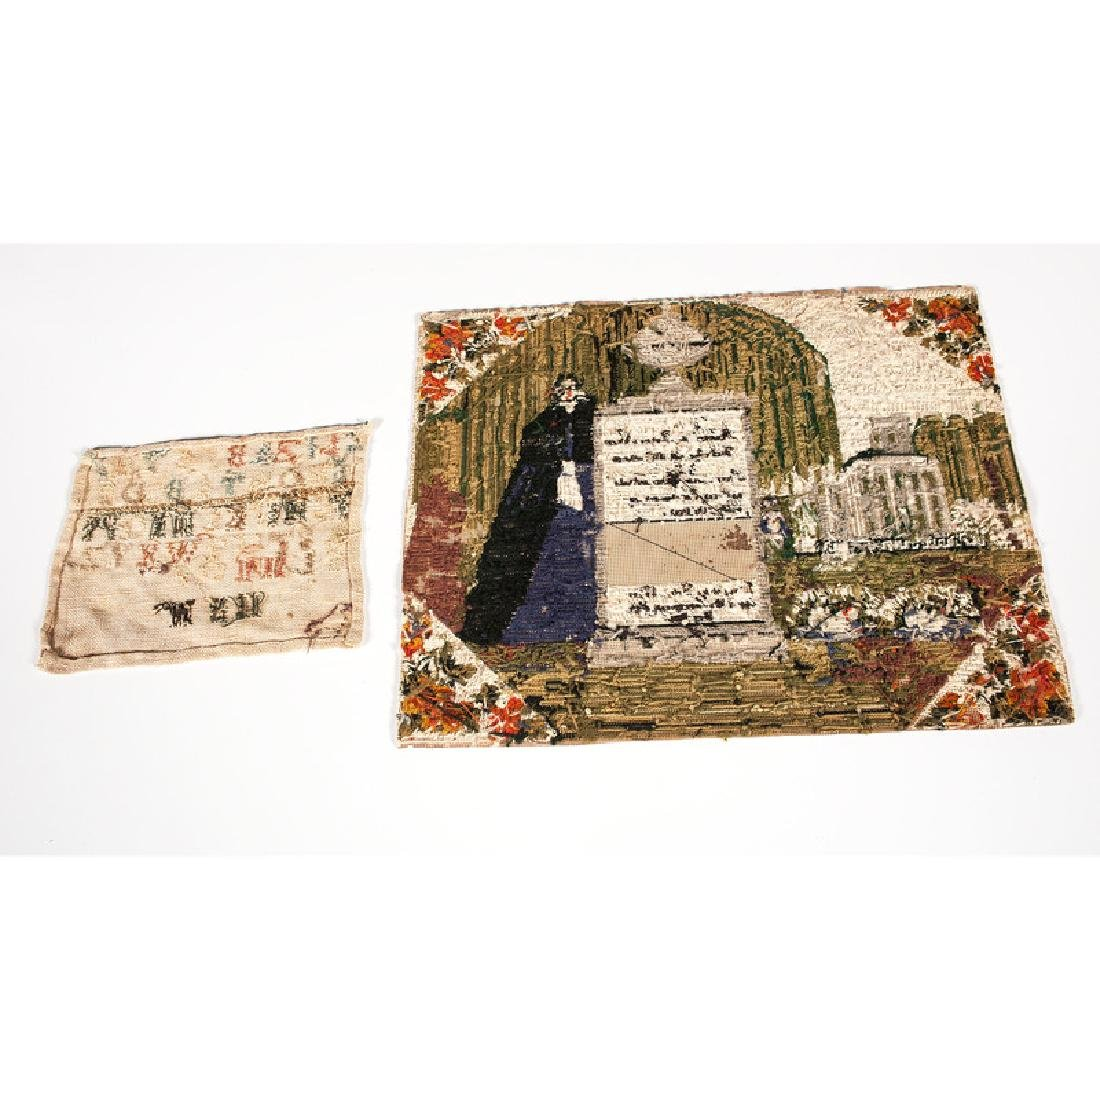 Memorial Sampler and Sampler Fragment - 2